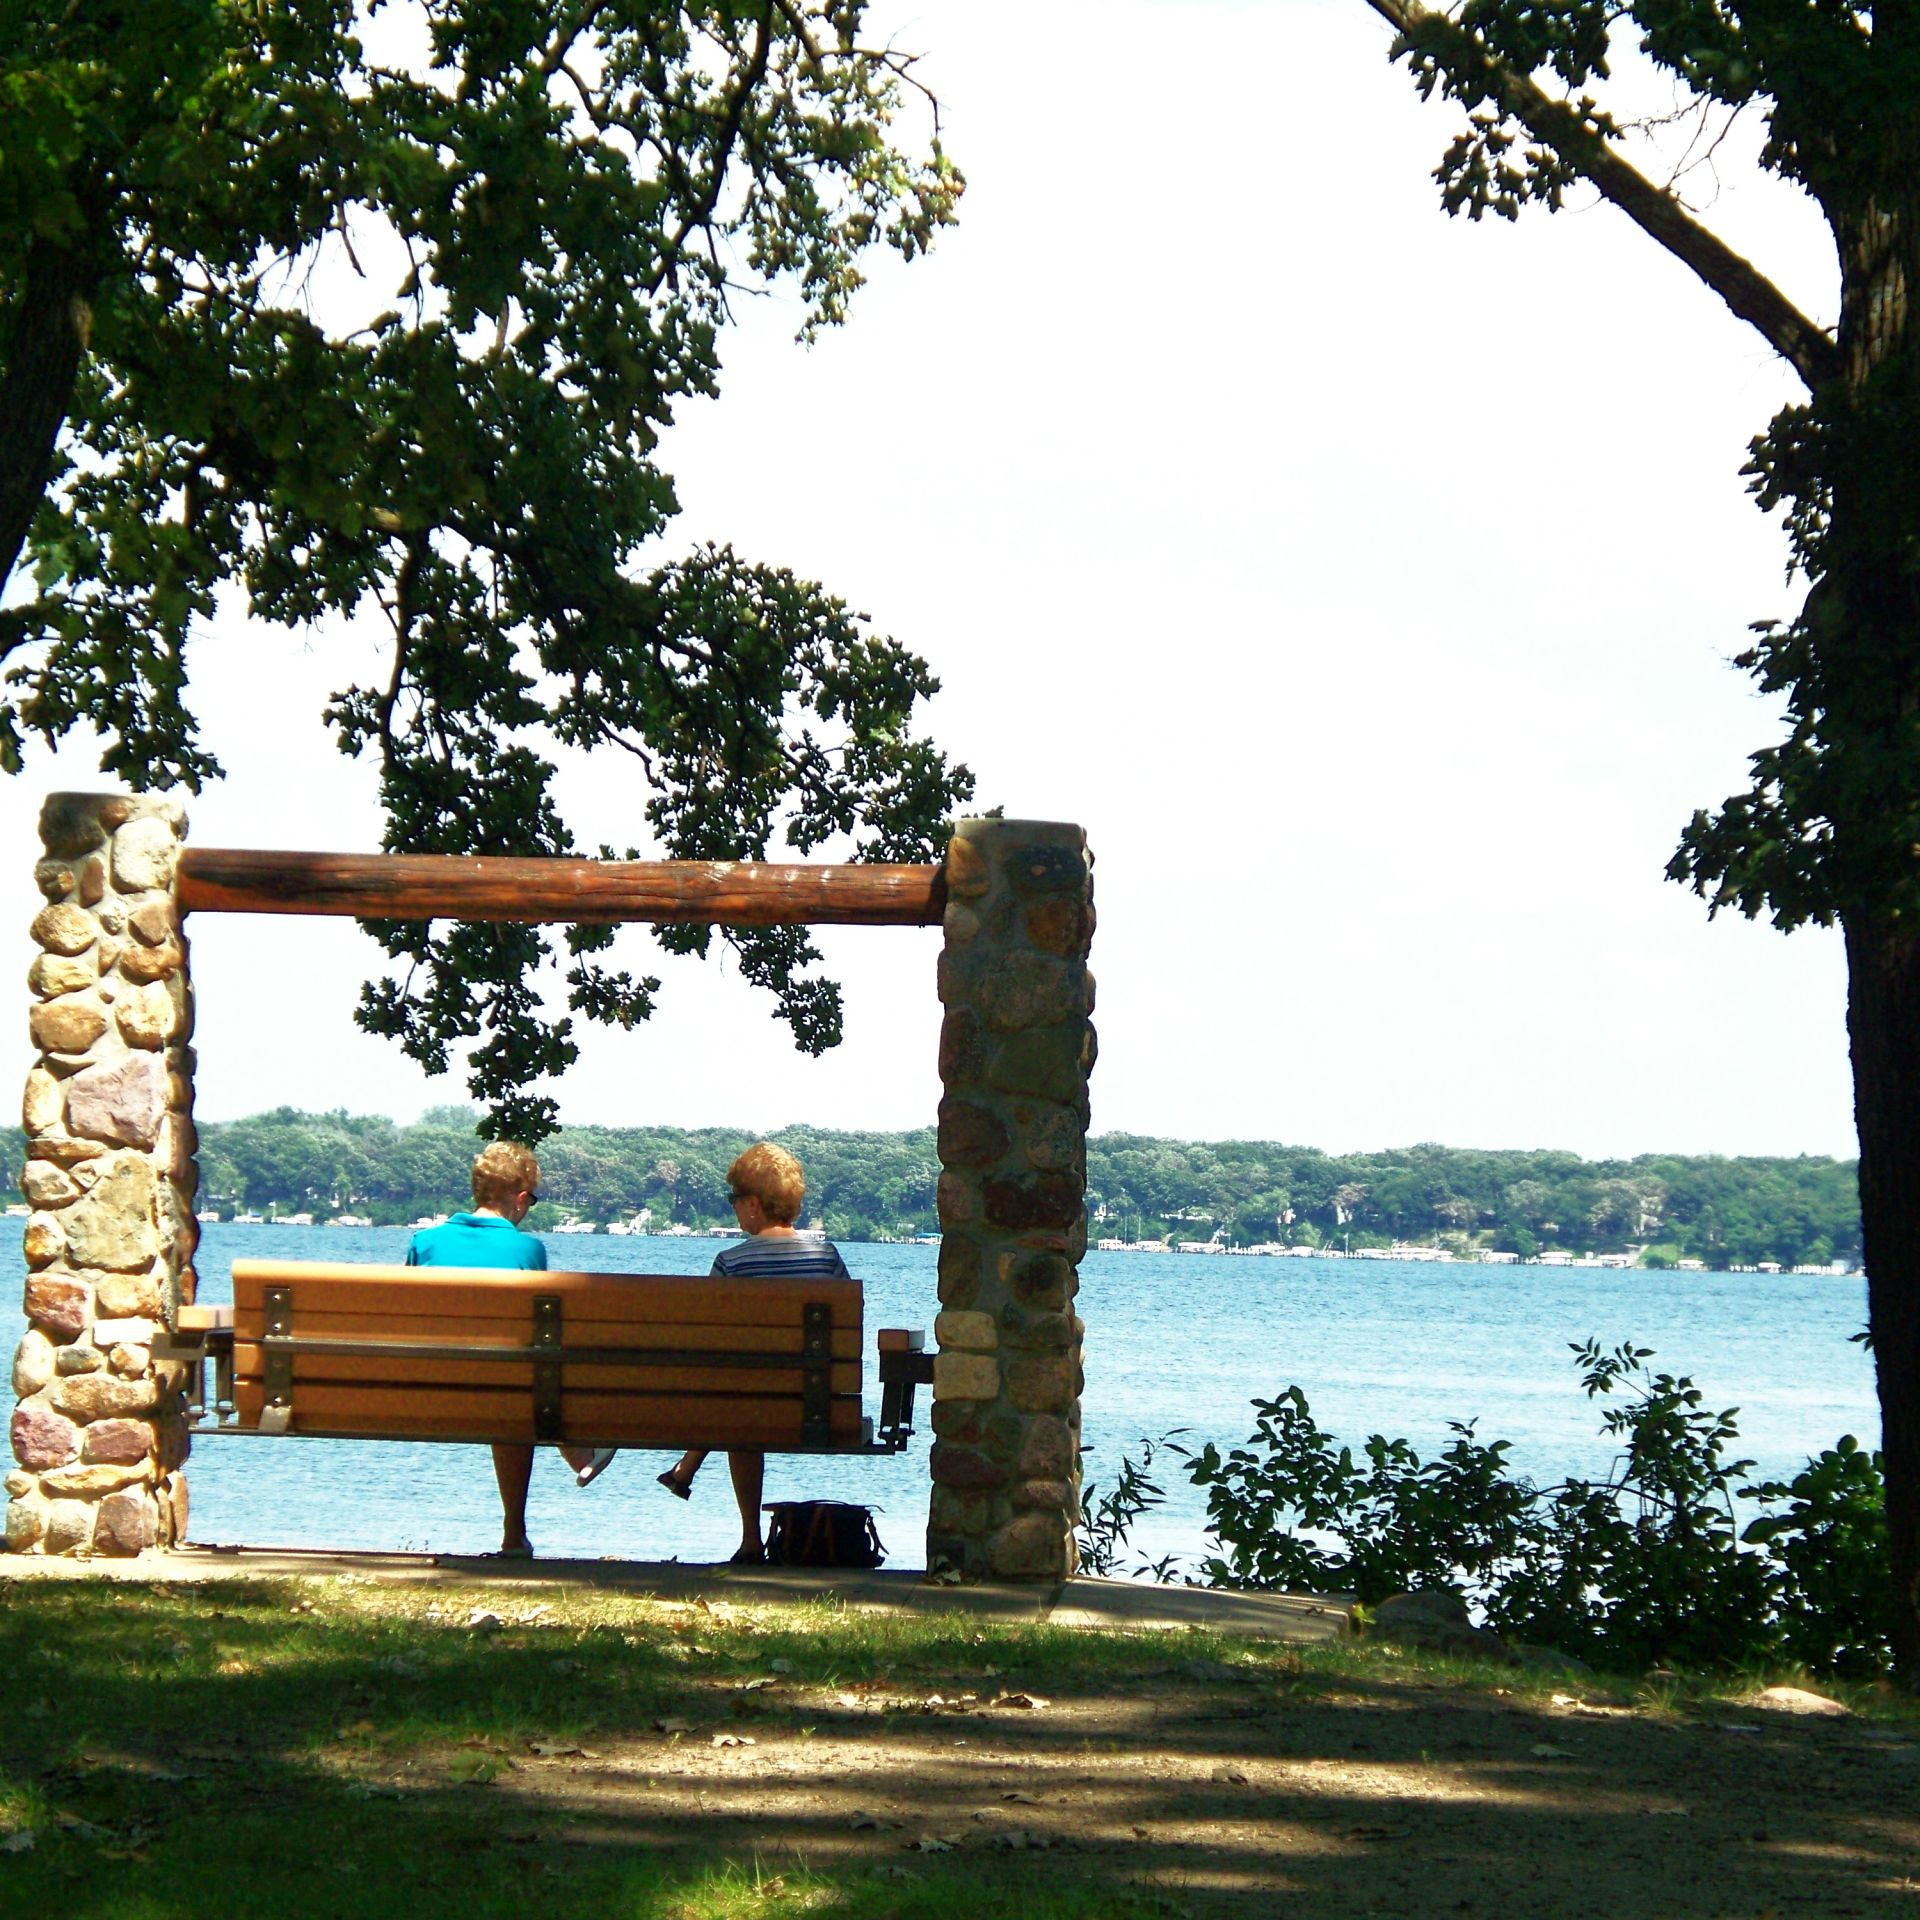 Gull Point on Okoboji Lake